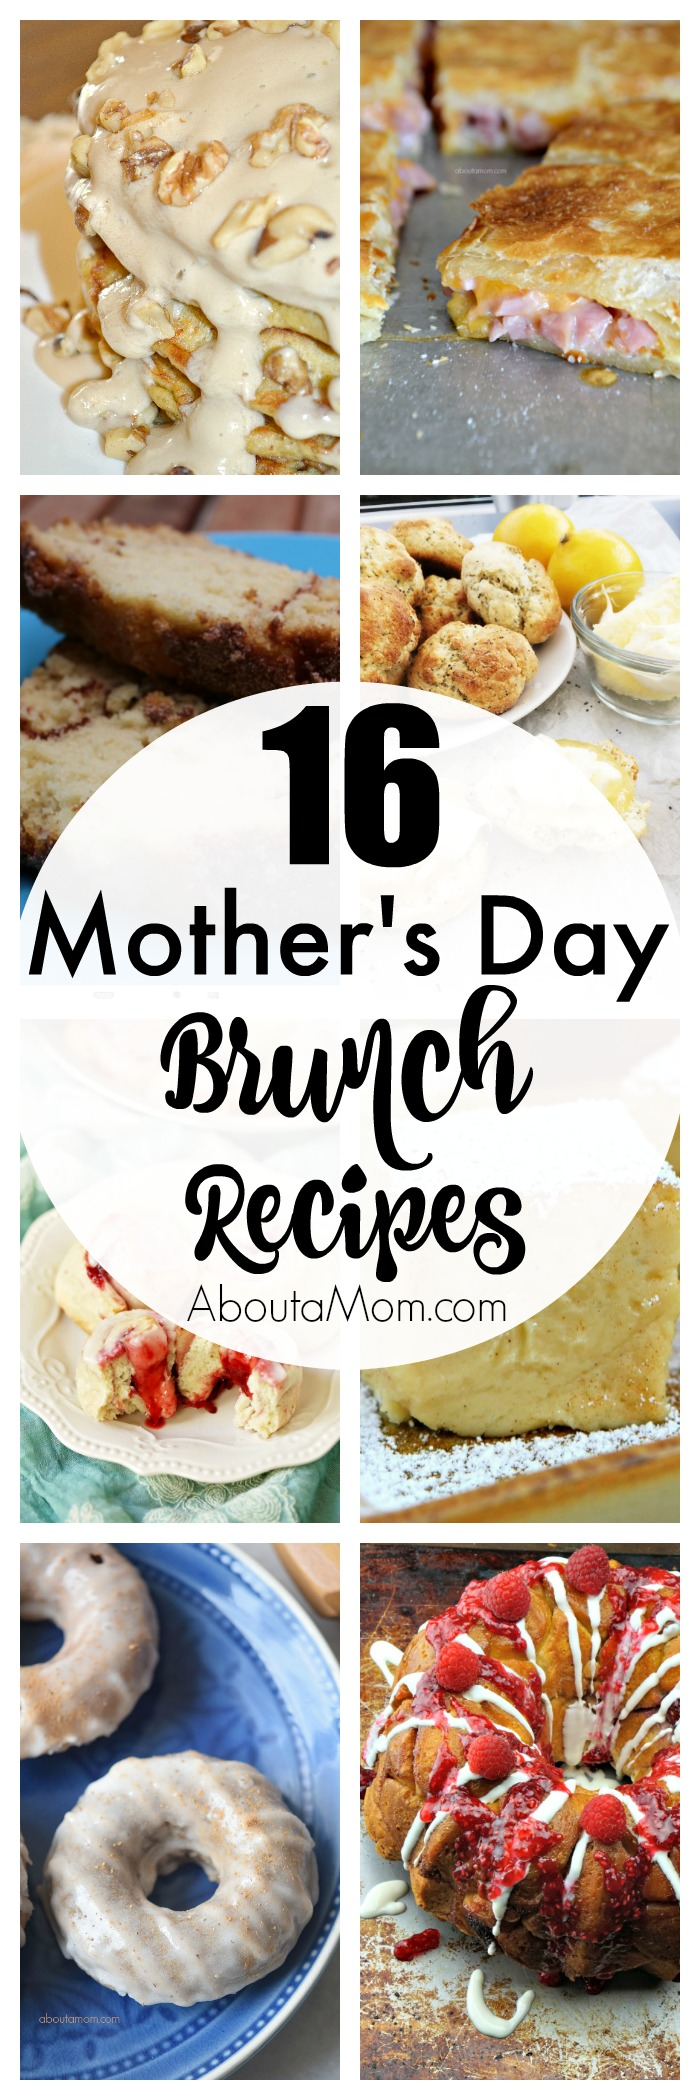 16 Mother's Day Brunch Recipes